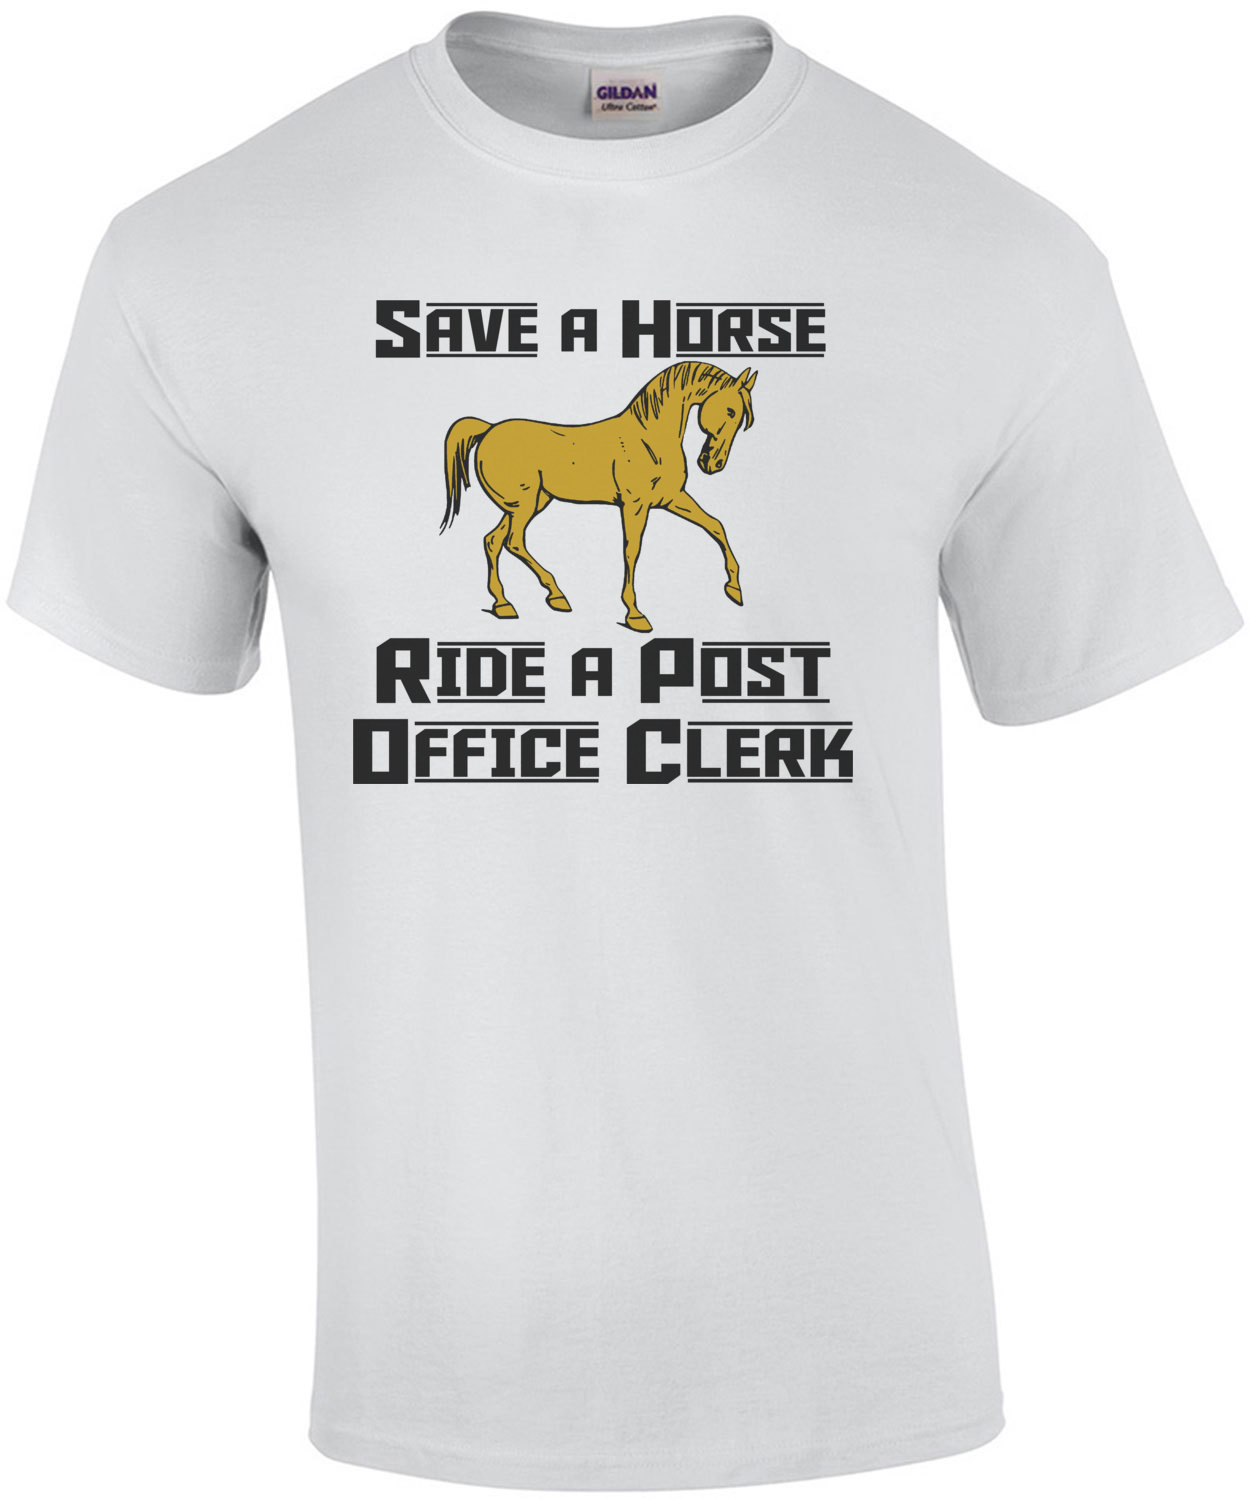 Save A Horse Ride A Post Office Clerk T-Shirt